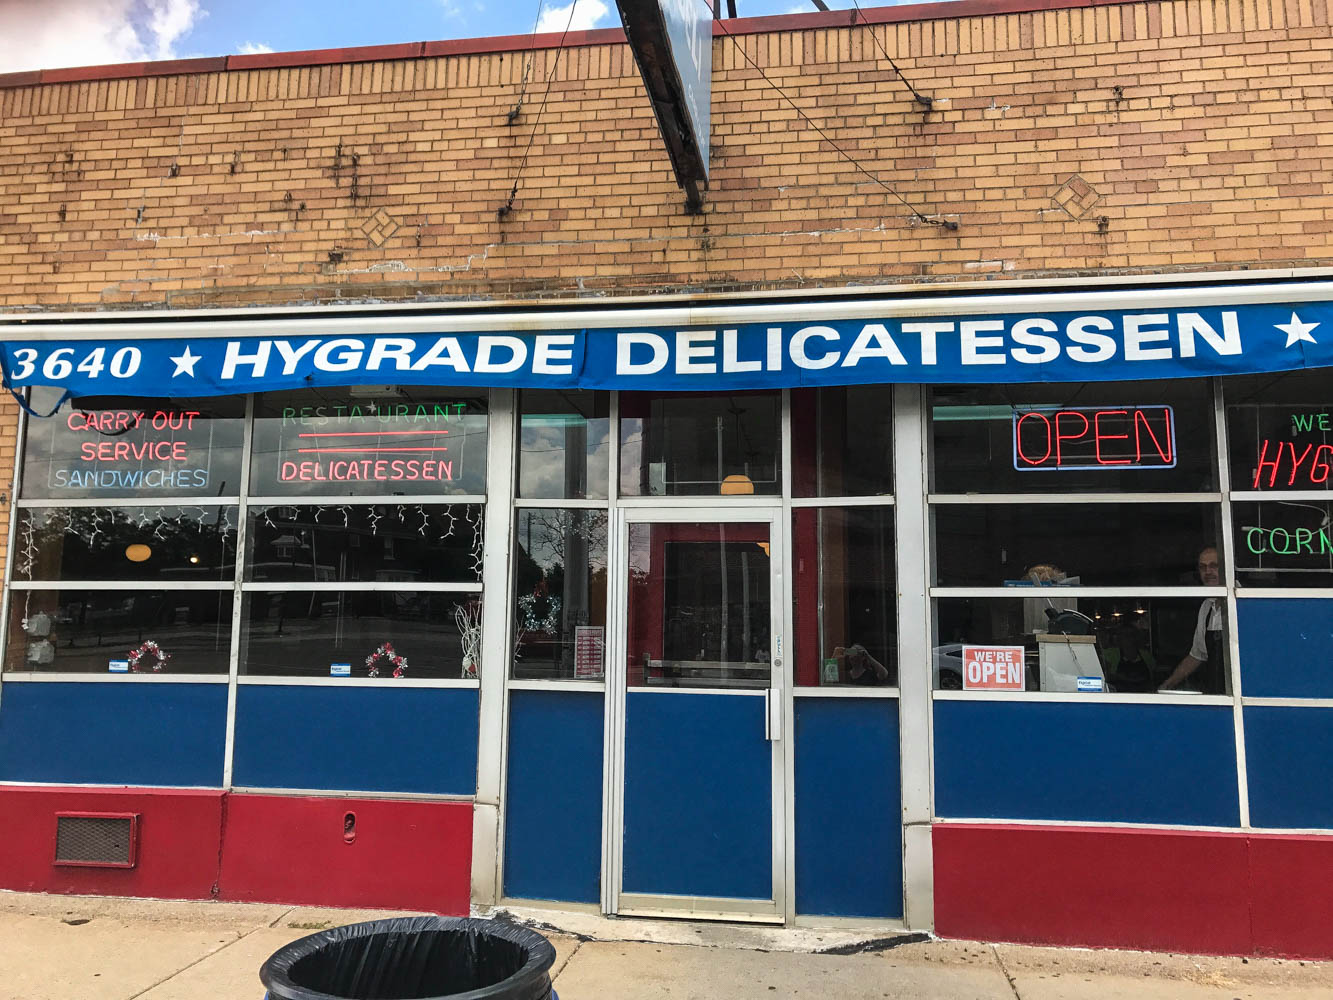 Hygrade Deli in Detroit, MI is the spot for their famous Corned Beef Sandwich. Find the full post at www.thebite2night.com